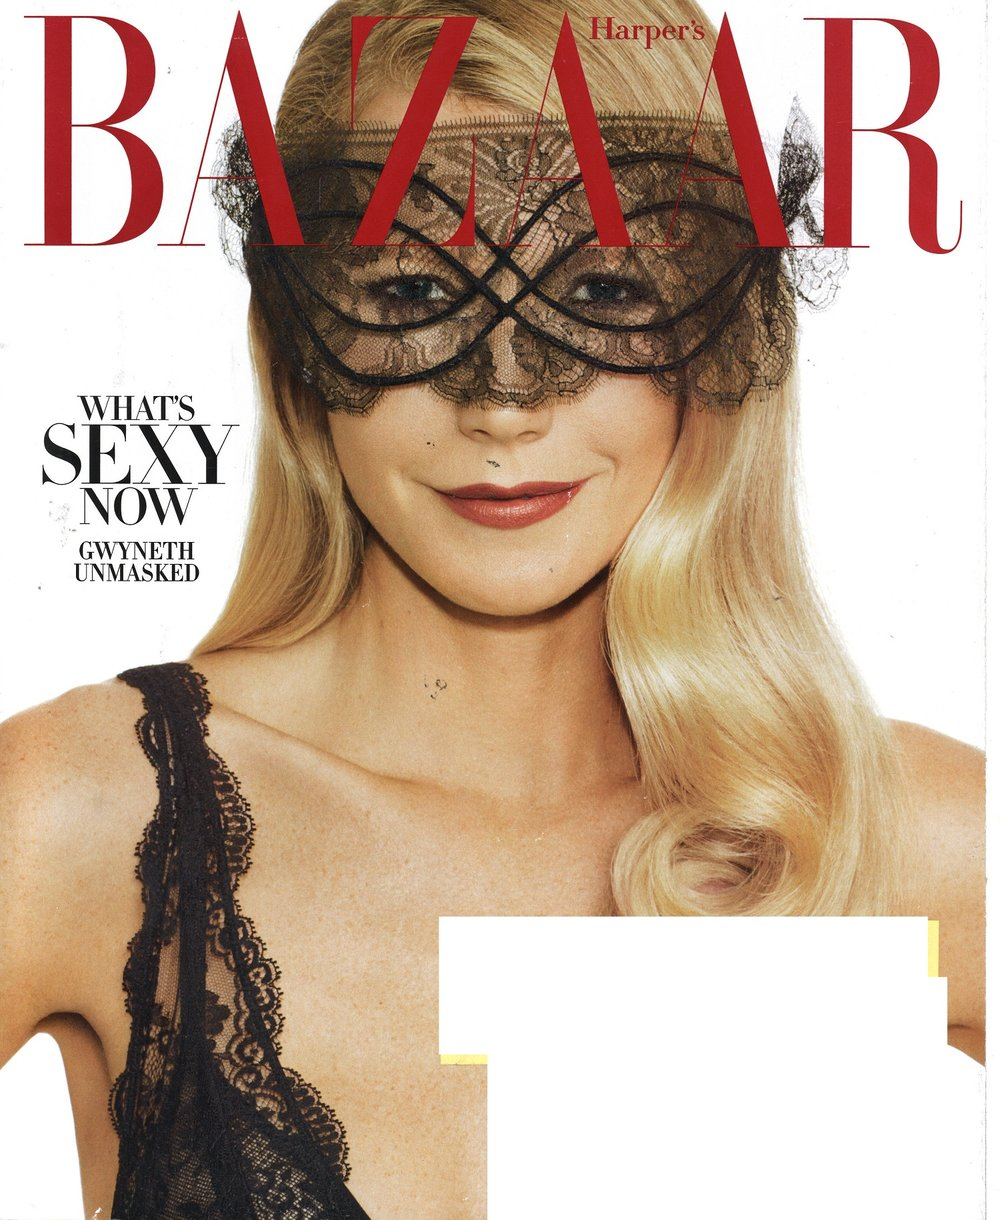 Harper's Bazaar - November 2016 - Cover.jpg